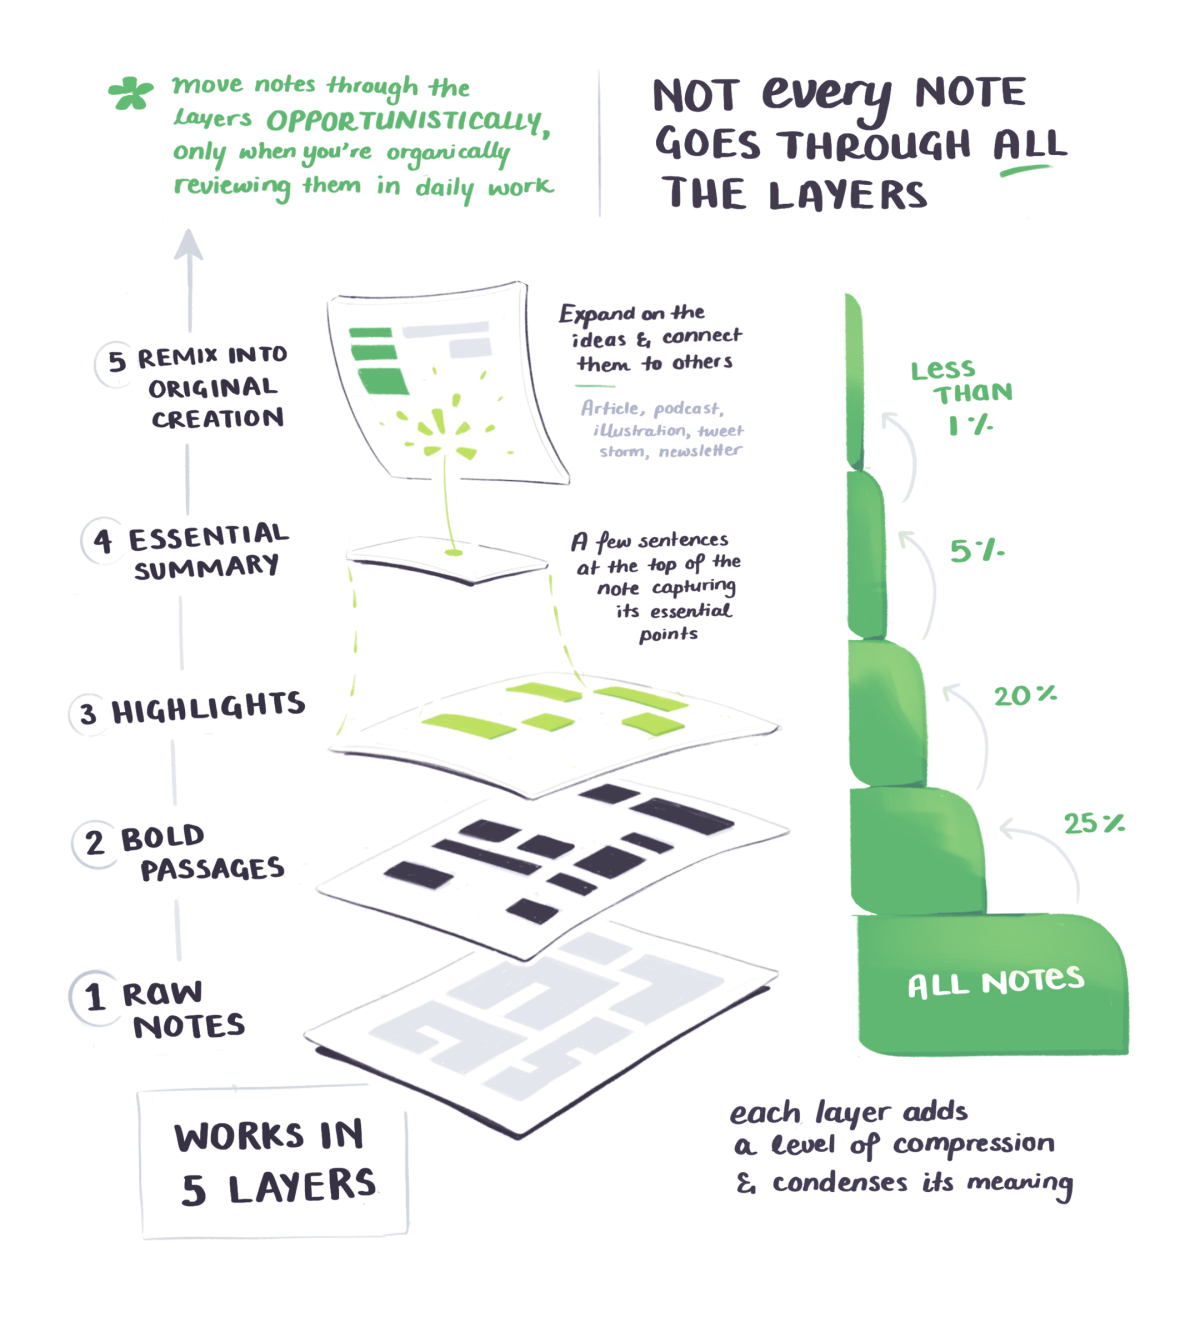 BASB sketchnotes on putting your notes through 5 layers of progressive summarisation